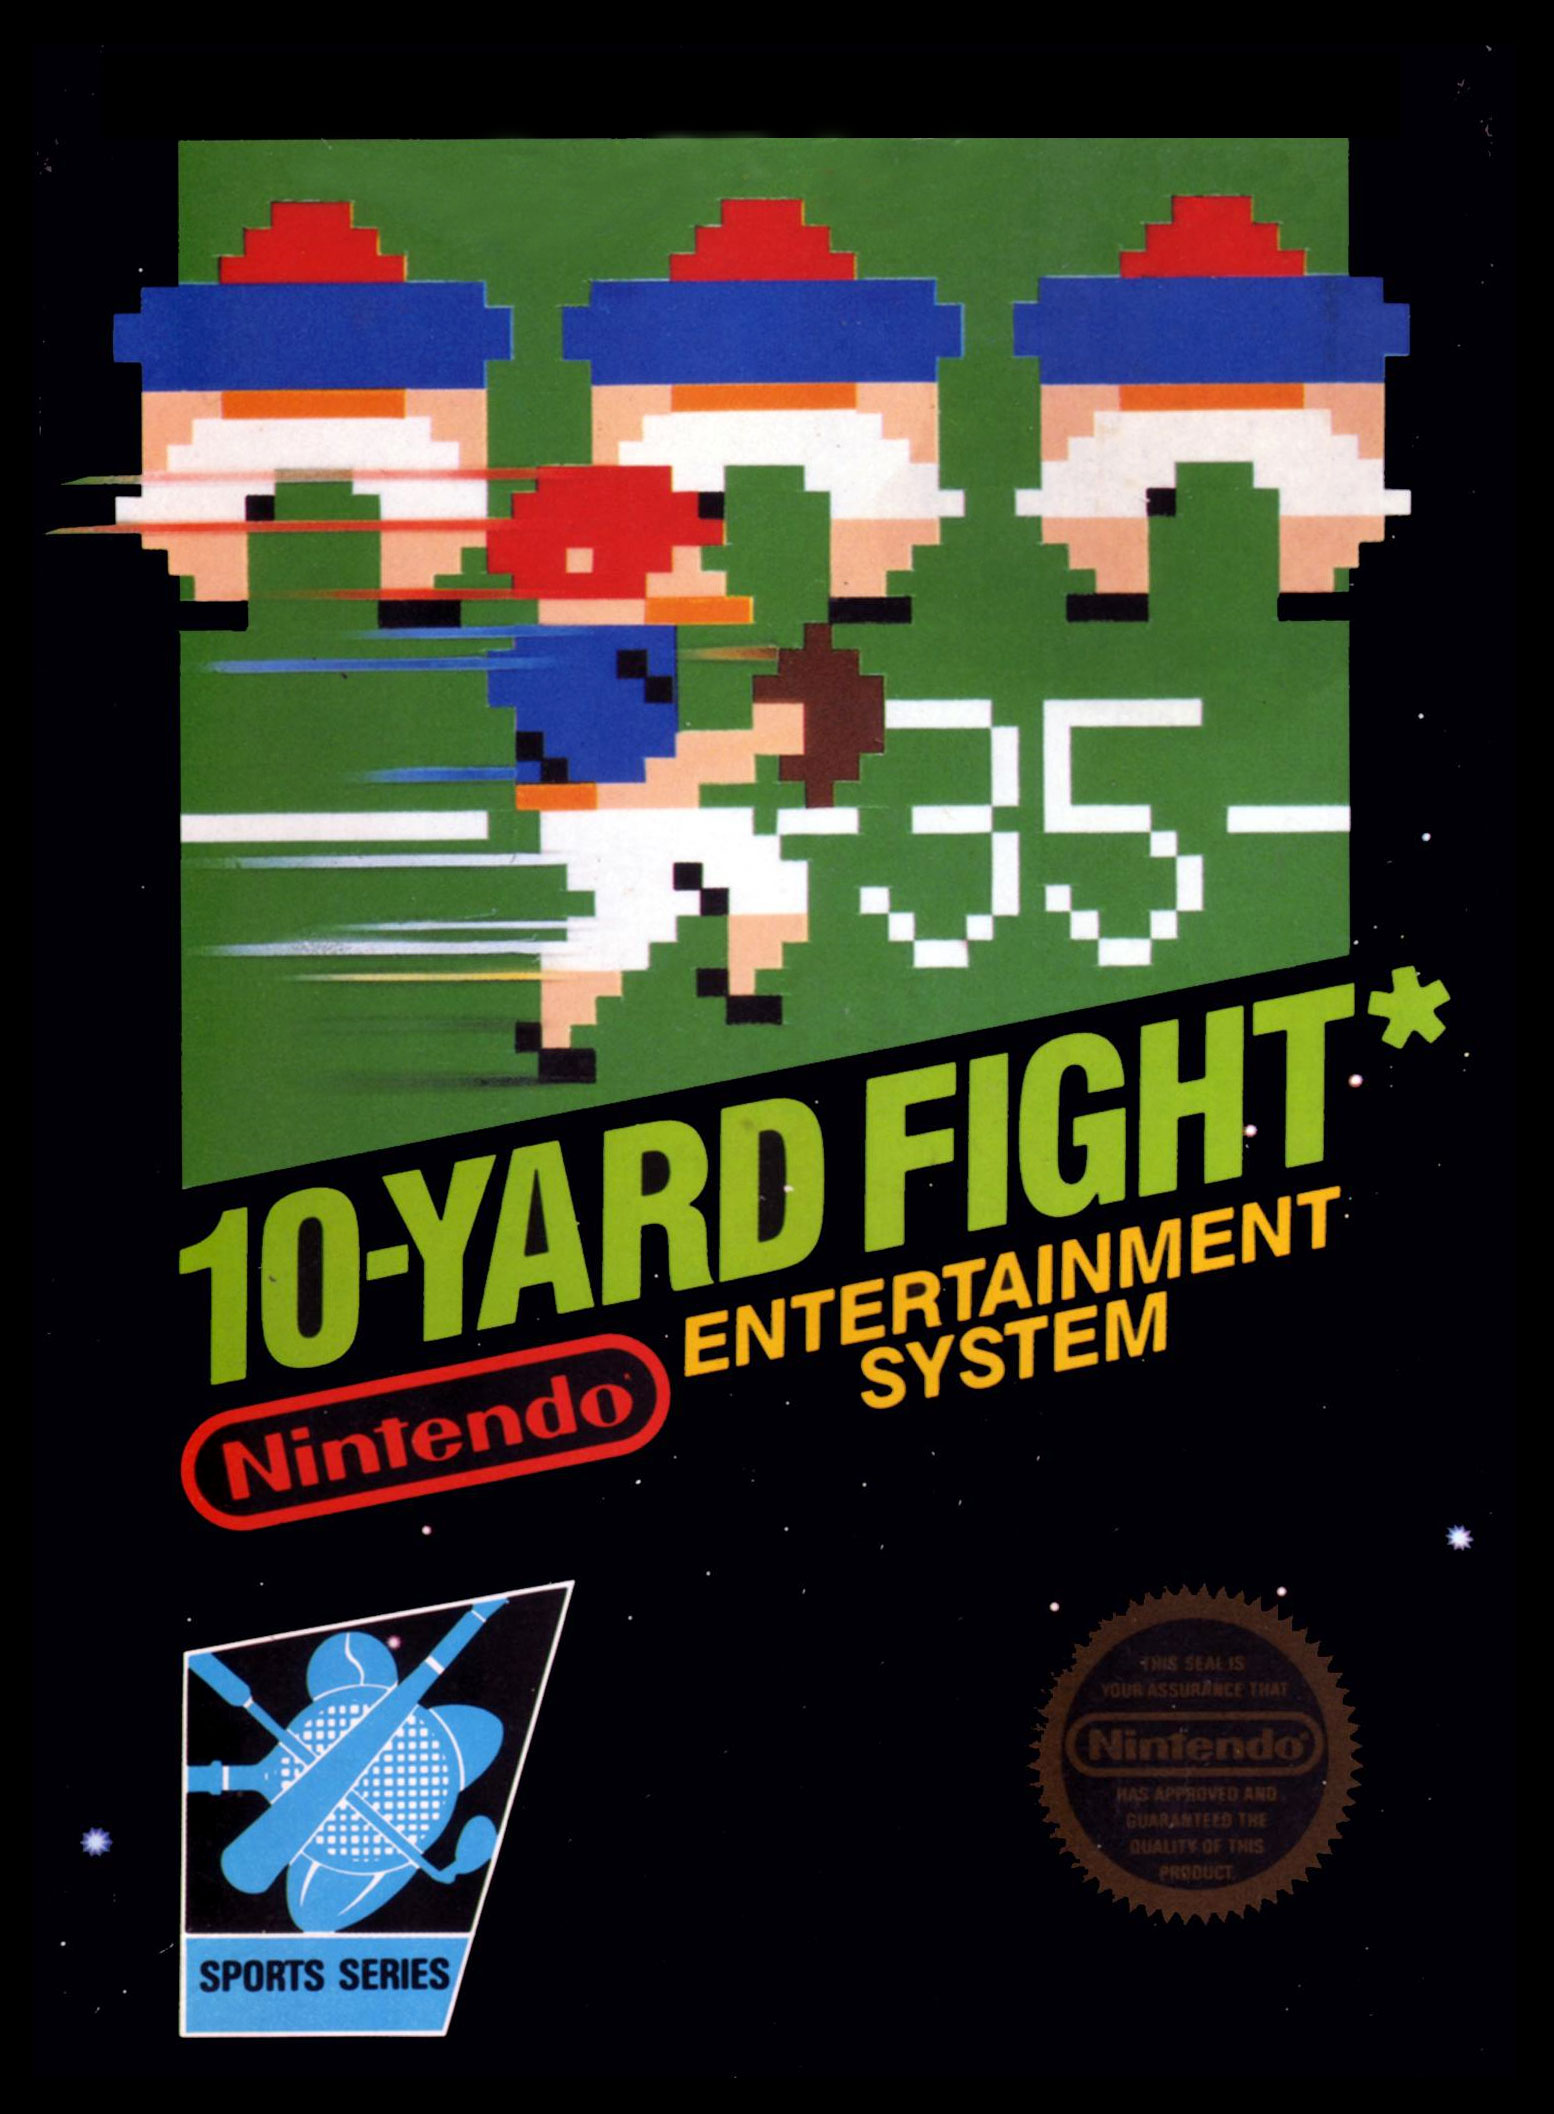 Nes Ice Hockey Fight Yard Fight